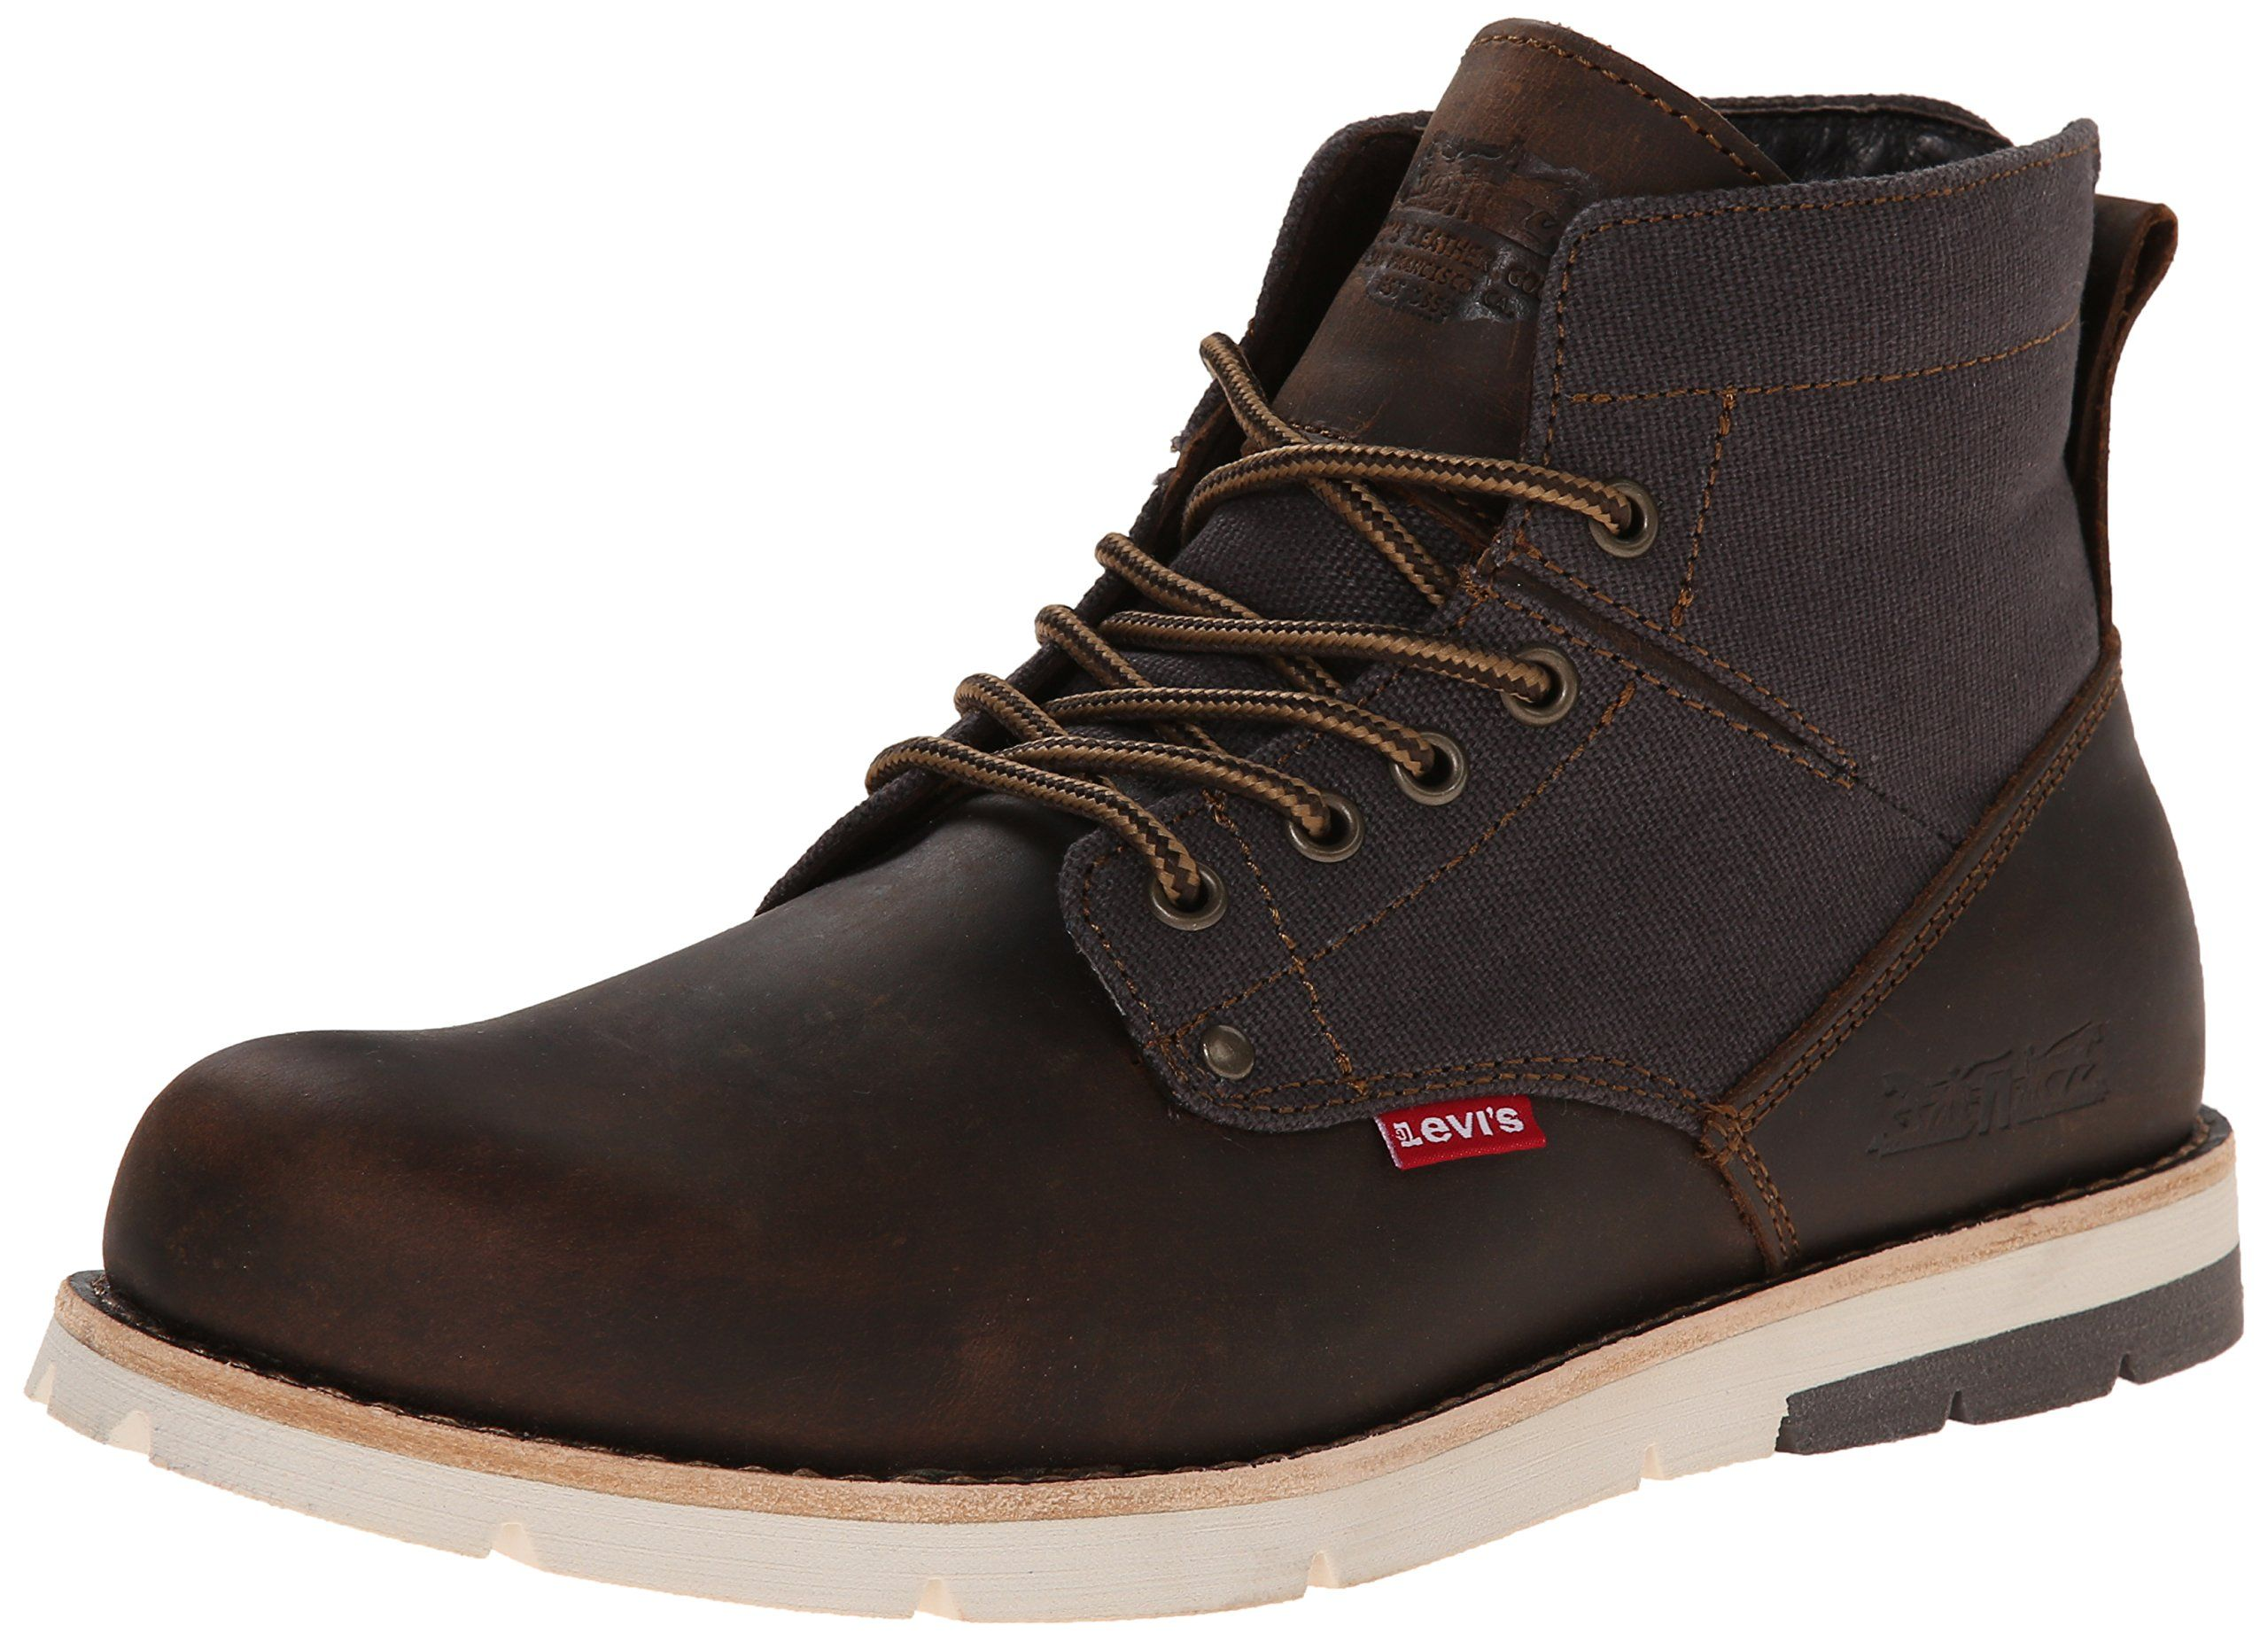 Mens Chukka Boots The World's Best Selling Shoes For Sale